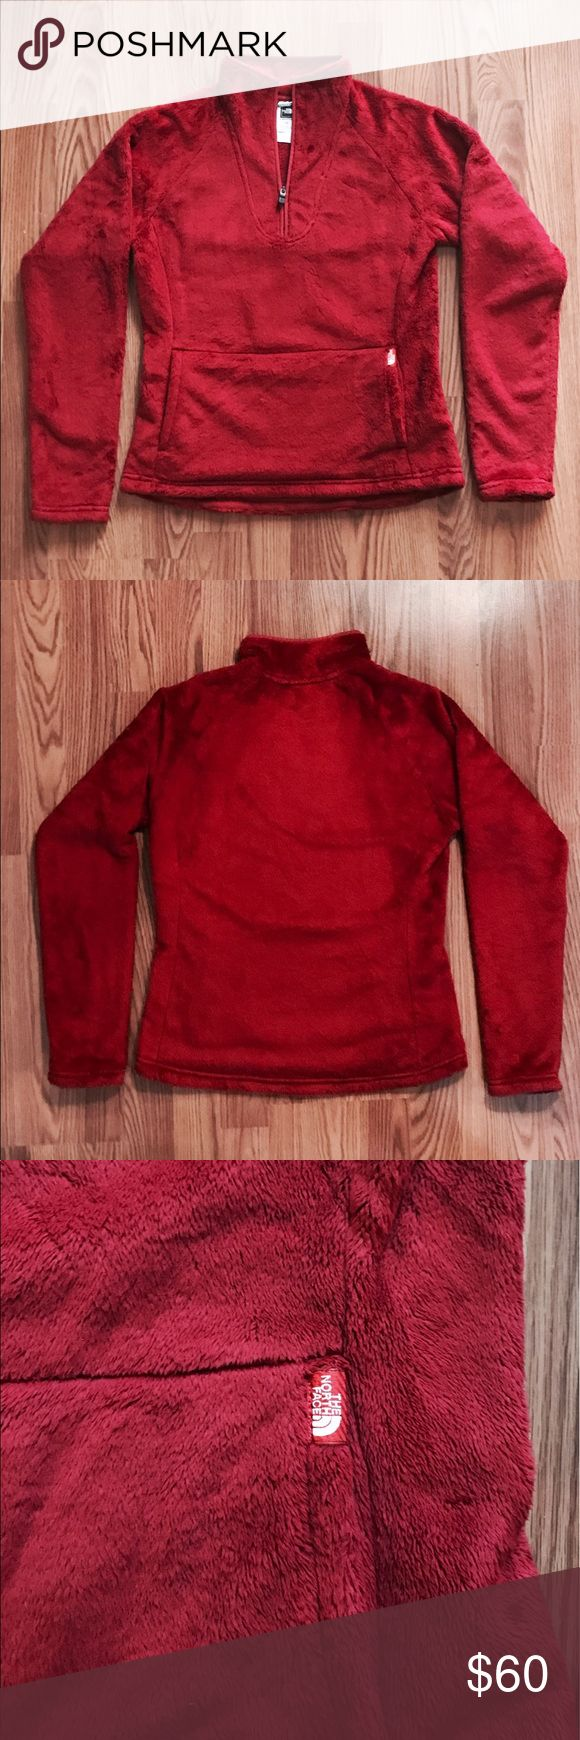 Red North Face Pullover Like NEW Woman's North Face Pullover! No stains and worn only once. Size small and 100% polyester. Accepting offers! Perfect for winter!!! North Face Jackets & Coats